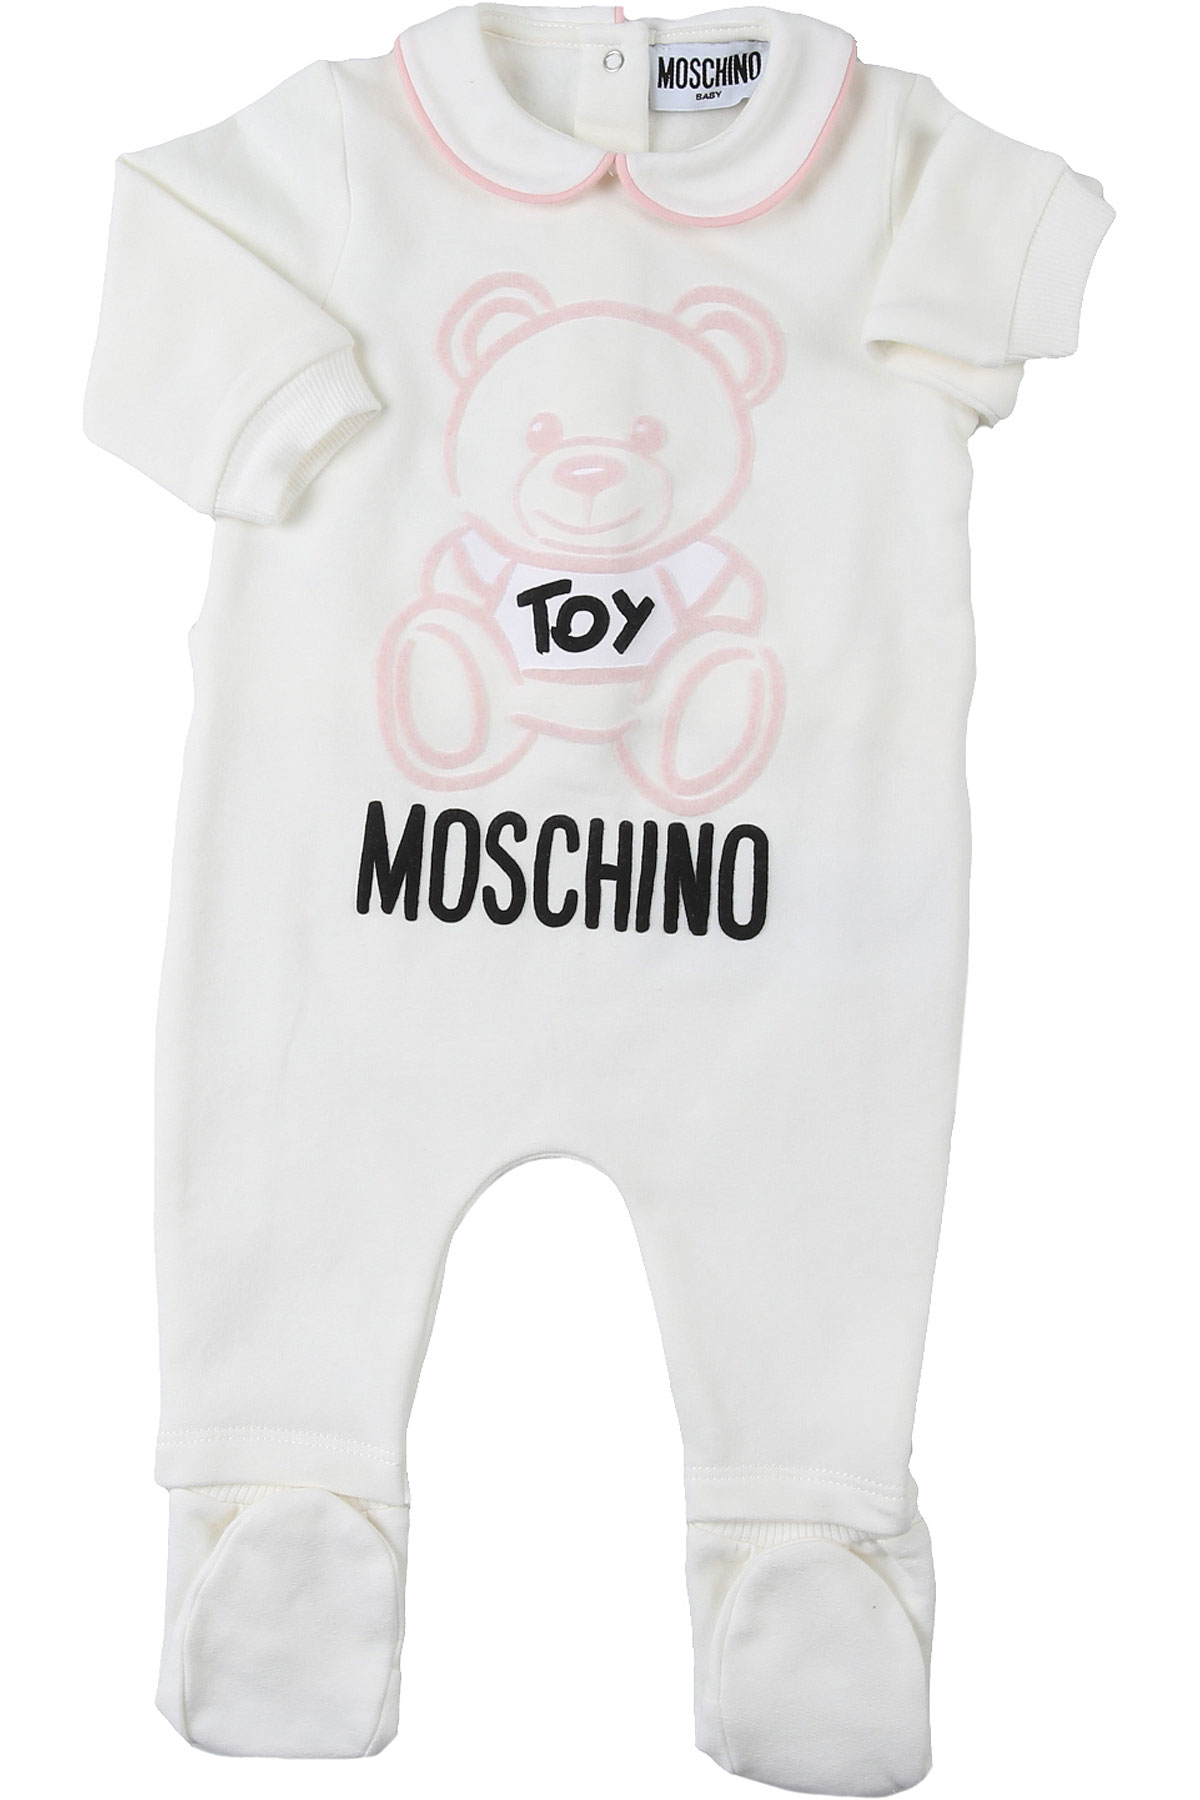 Moschino Baby Bodysuits & Onesies for Girls On Sale, White, Cotton, 2019, 3M 6M 9M